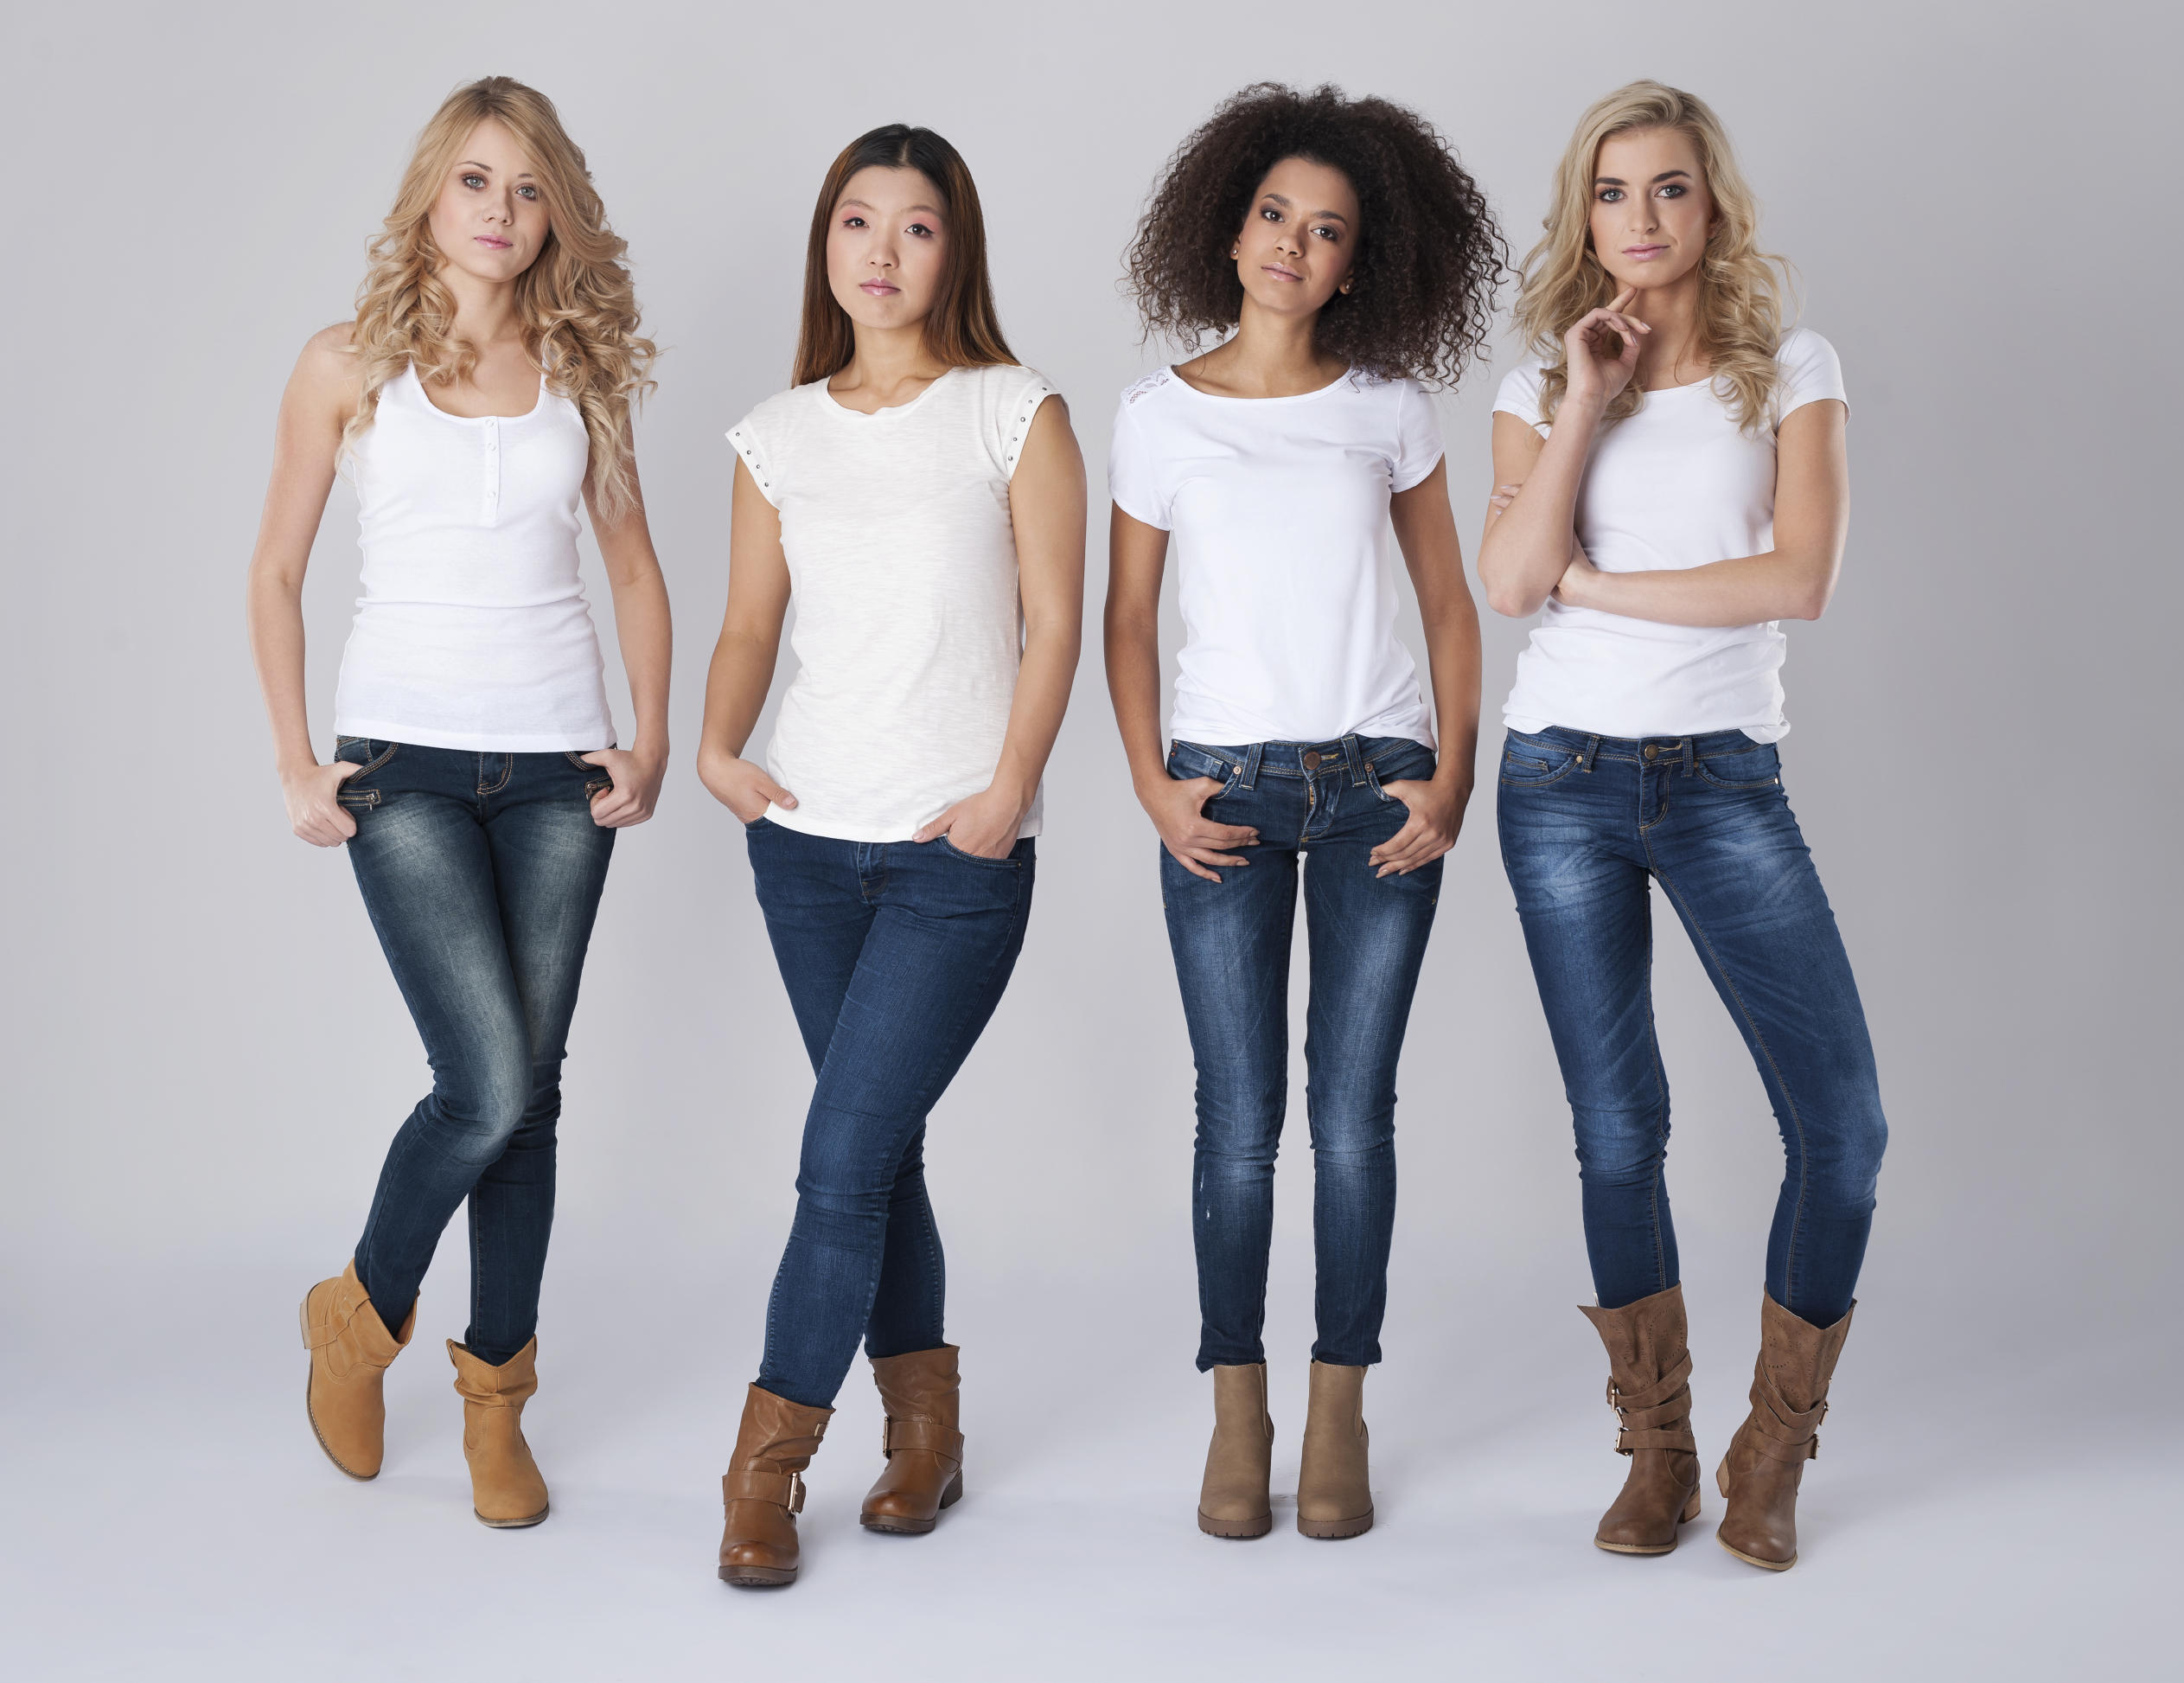 picture of women in jeans